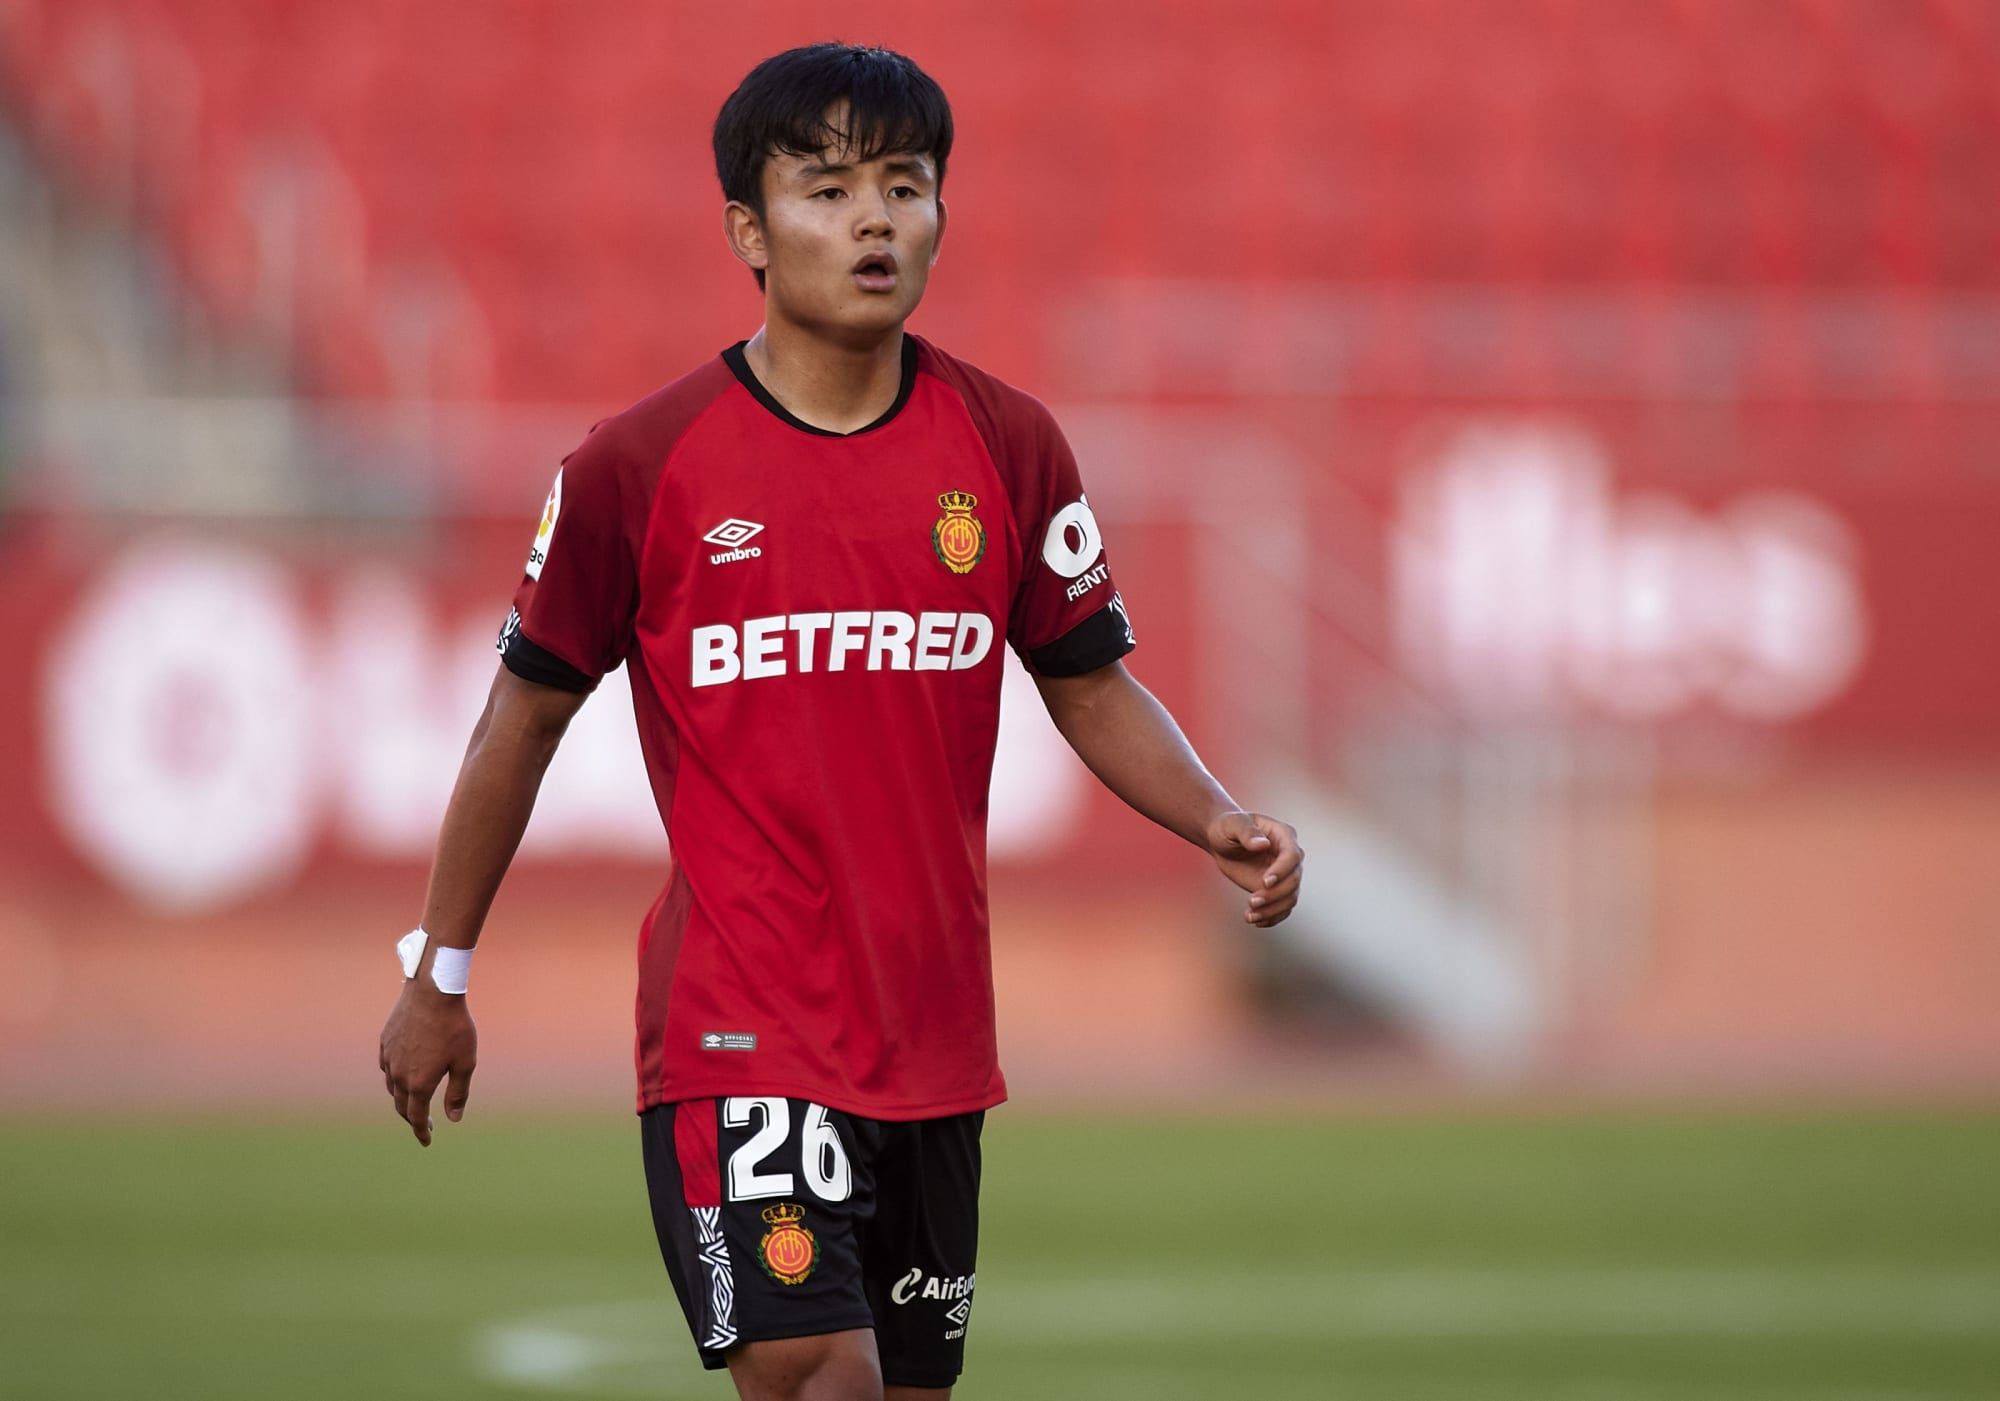 Real Madrid: Bayern Munich make no sense for Takefusa Kubo